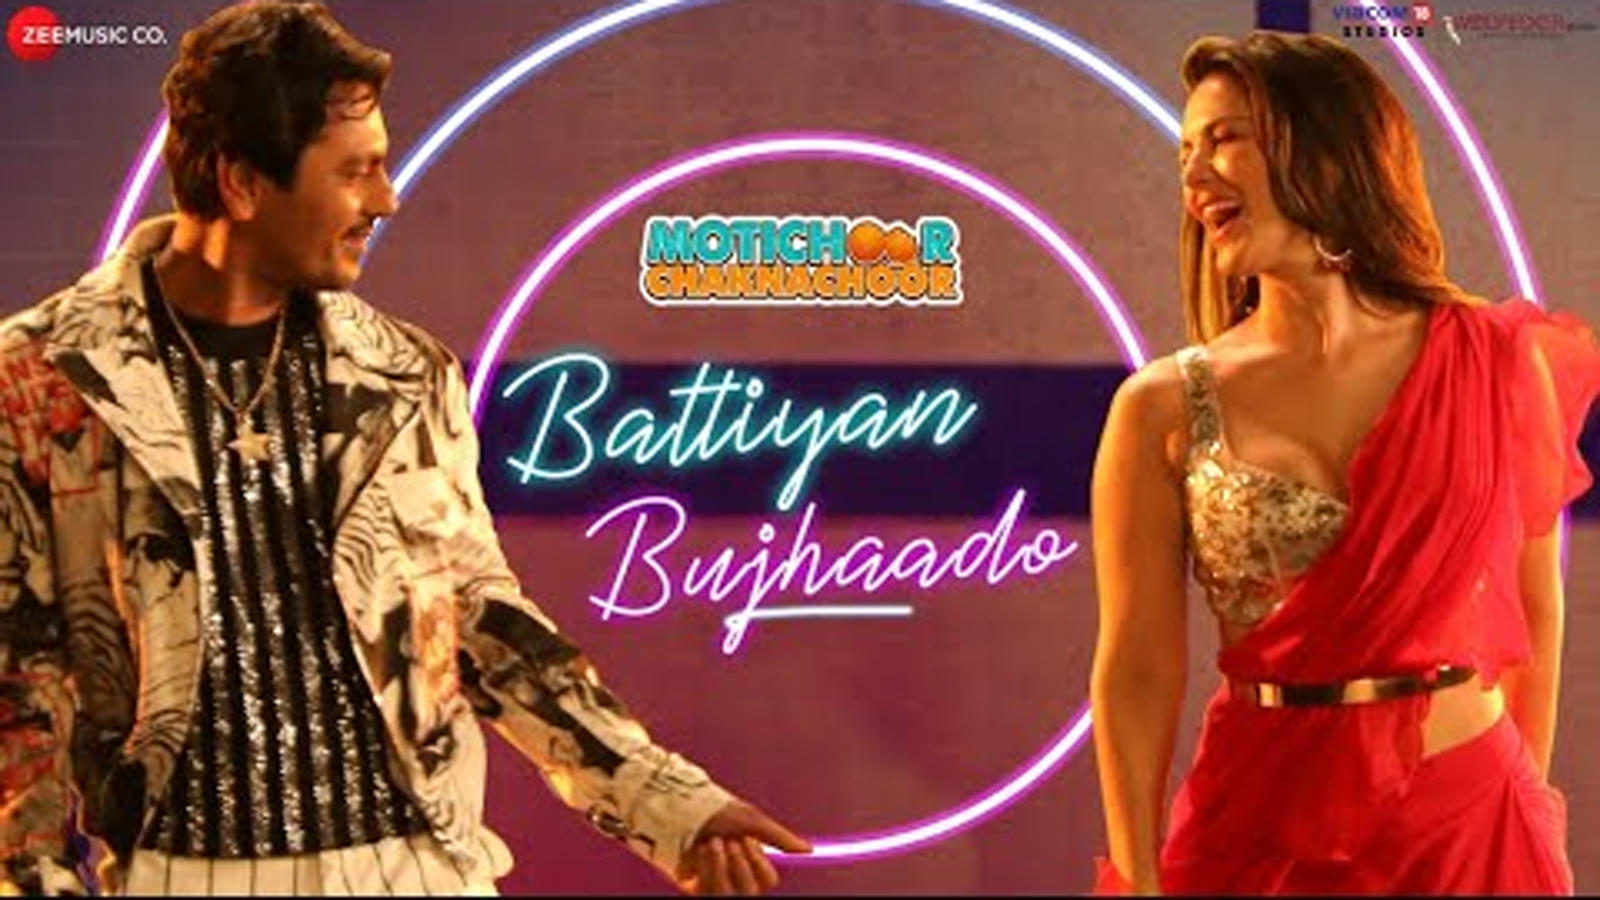 Motichoor Chaknachoor Song Battiyan Bujhaado Hindi Video Songs Times Of India